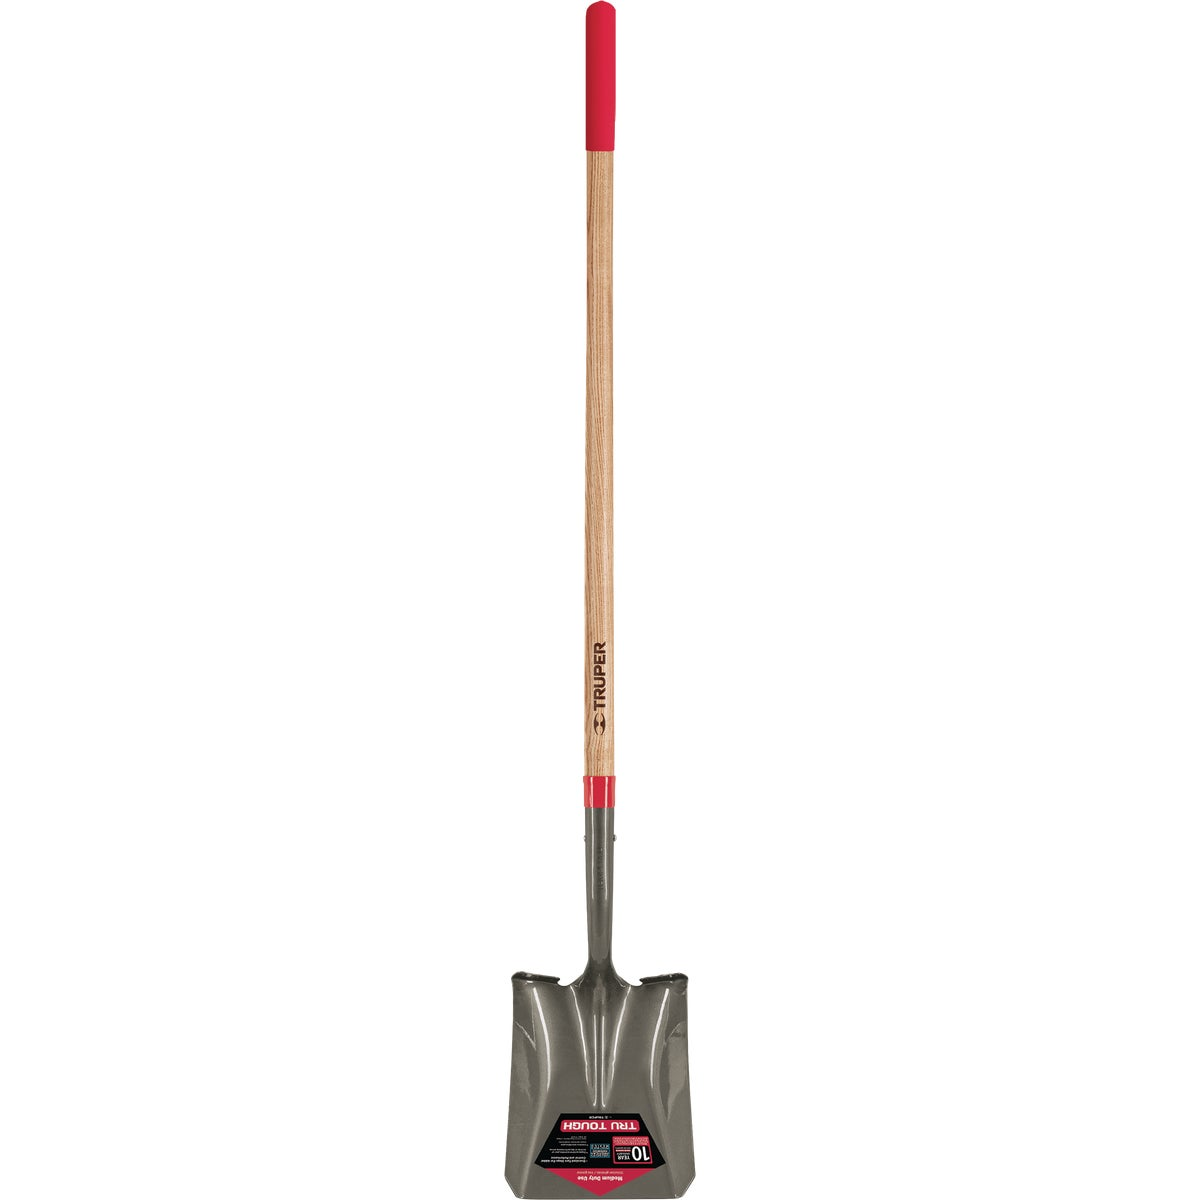 LHSP SHOVEL - 163033400 by Ames True Temper